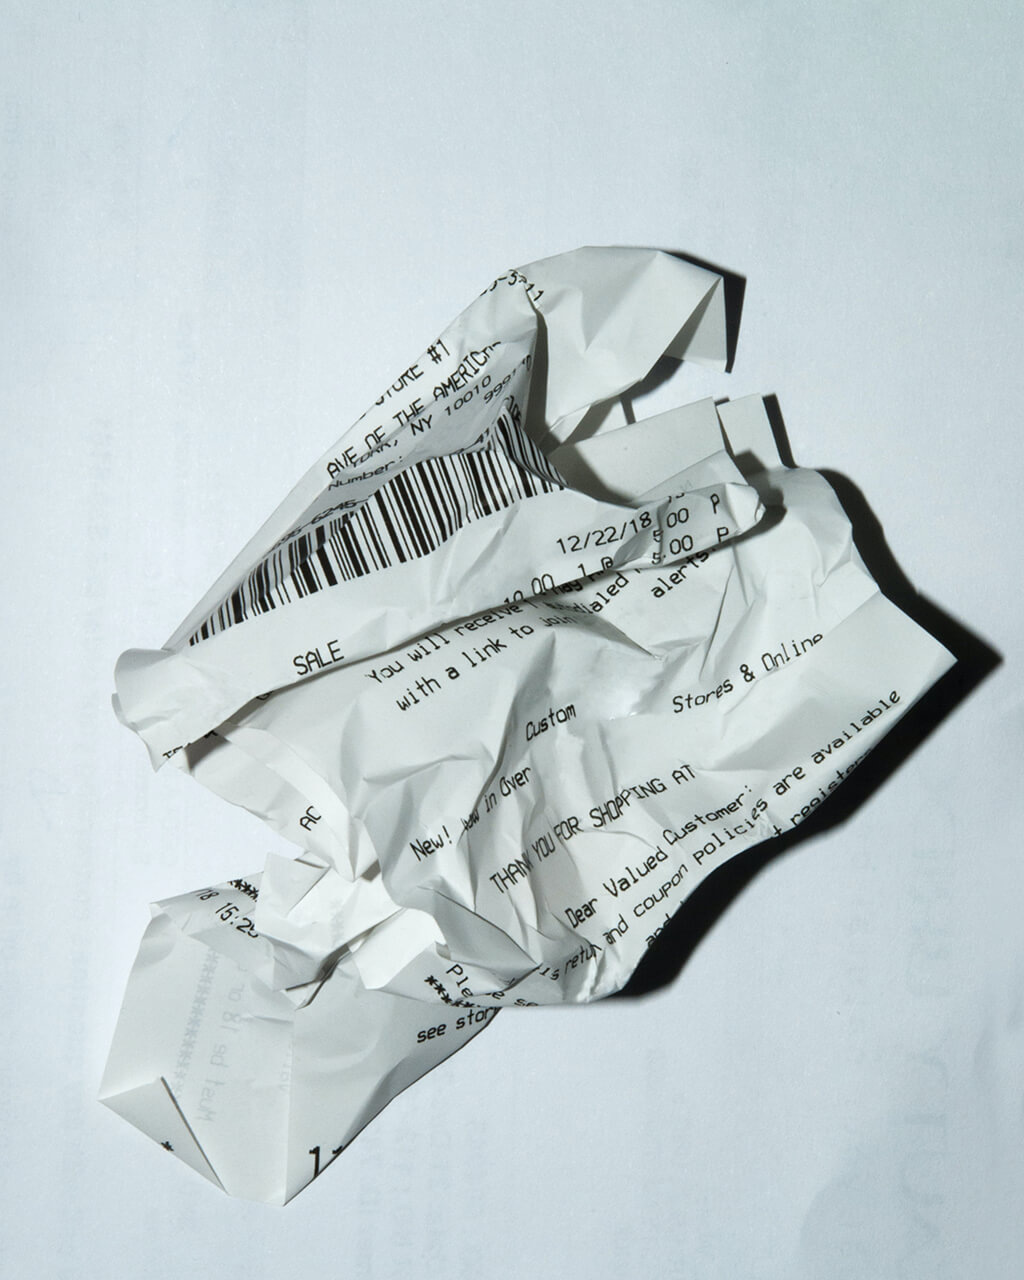 A crumpled receipt